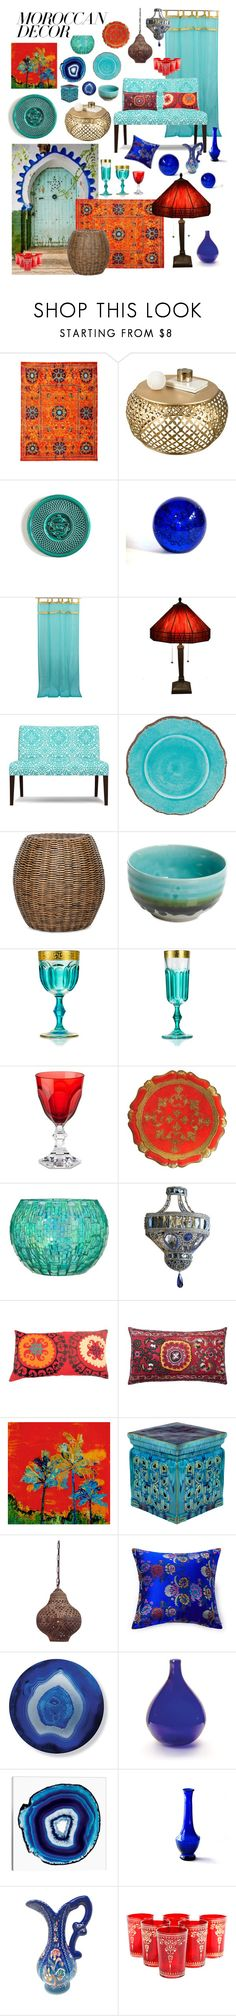 """The Place the Sun Sets!"" by julu-eva ❤ liked on Polyvore featuring interior, interiors, interior design, home, home decor, interior decorating, Marrakech, Godinger, Warehouse of Tiffany and Frontgate"